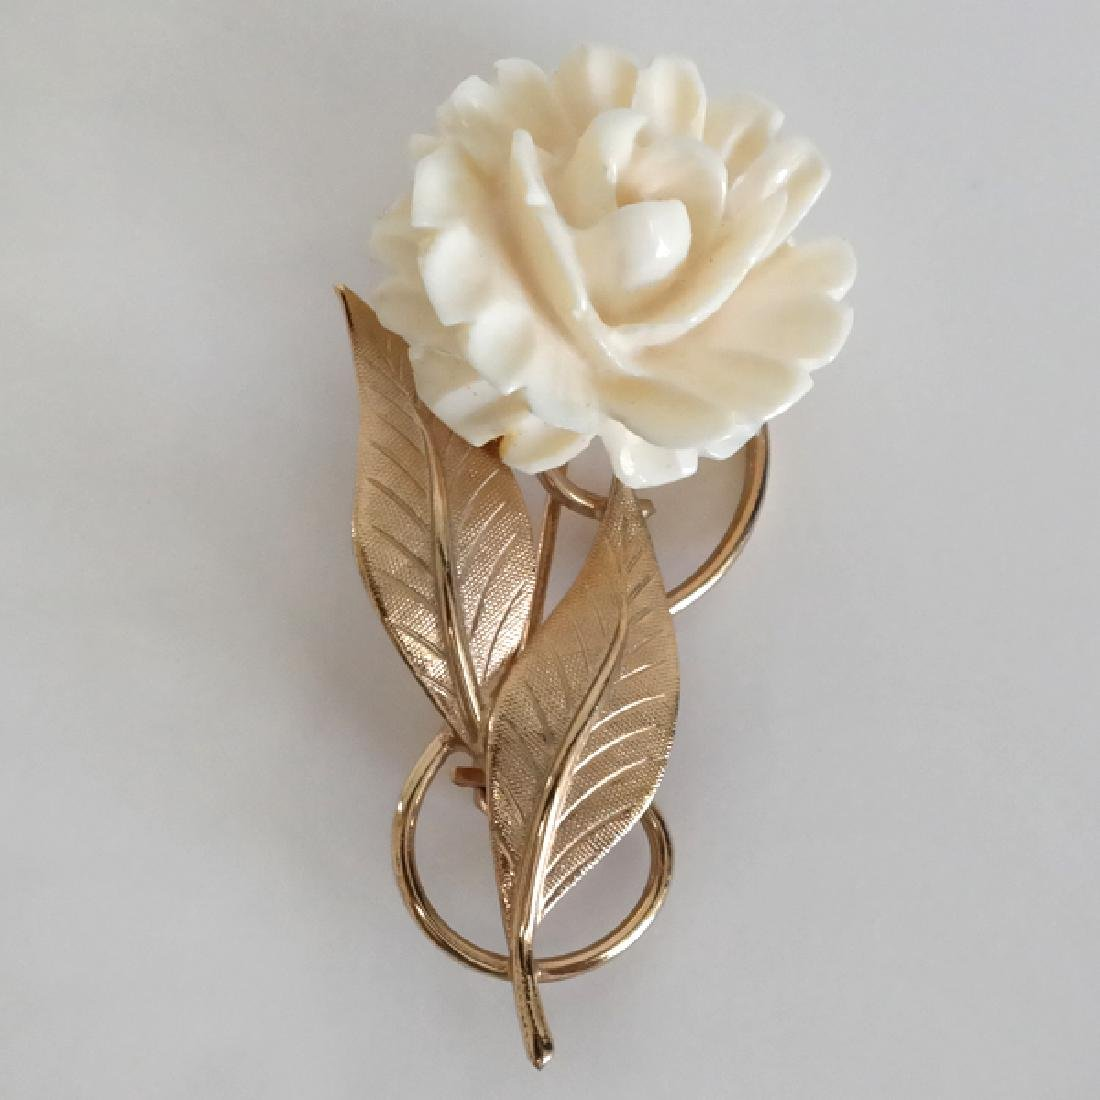 Gold plated textured leaves with carved angel skin